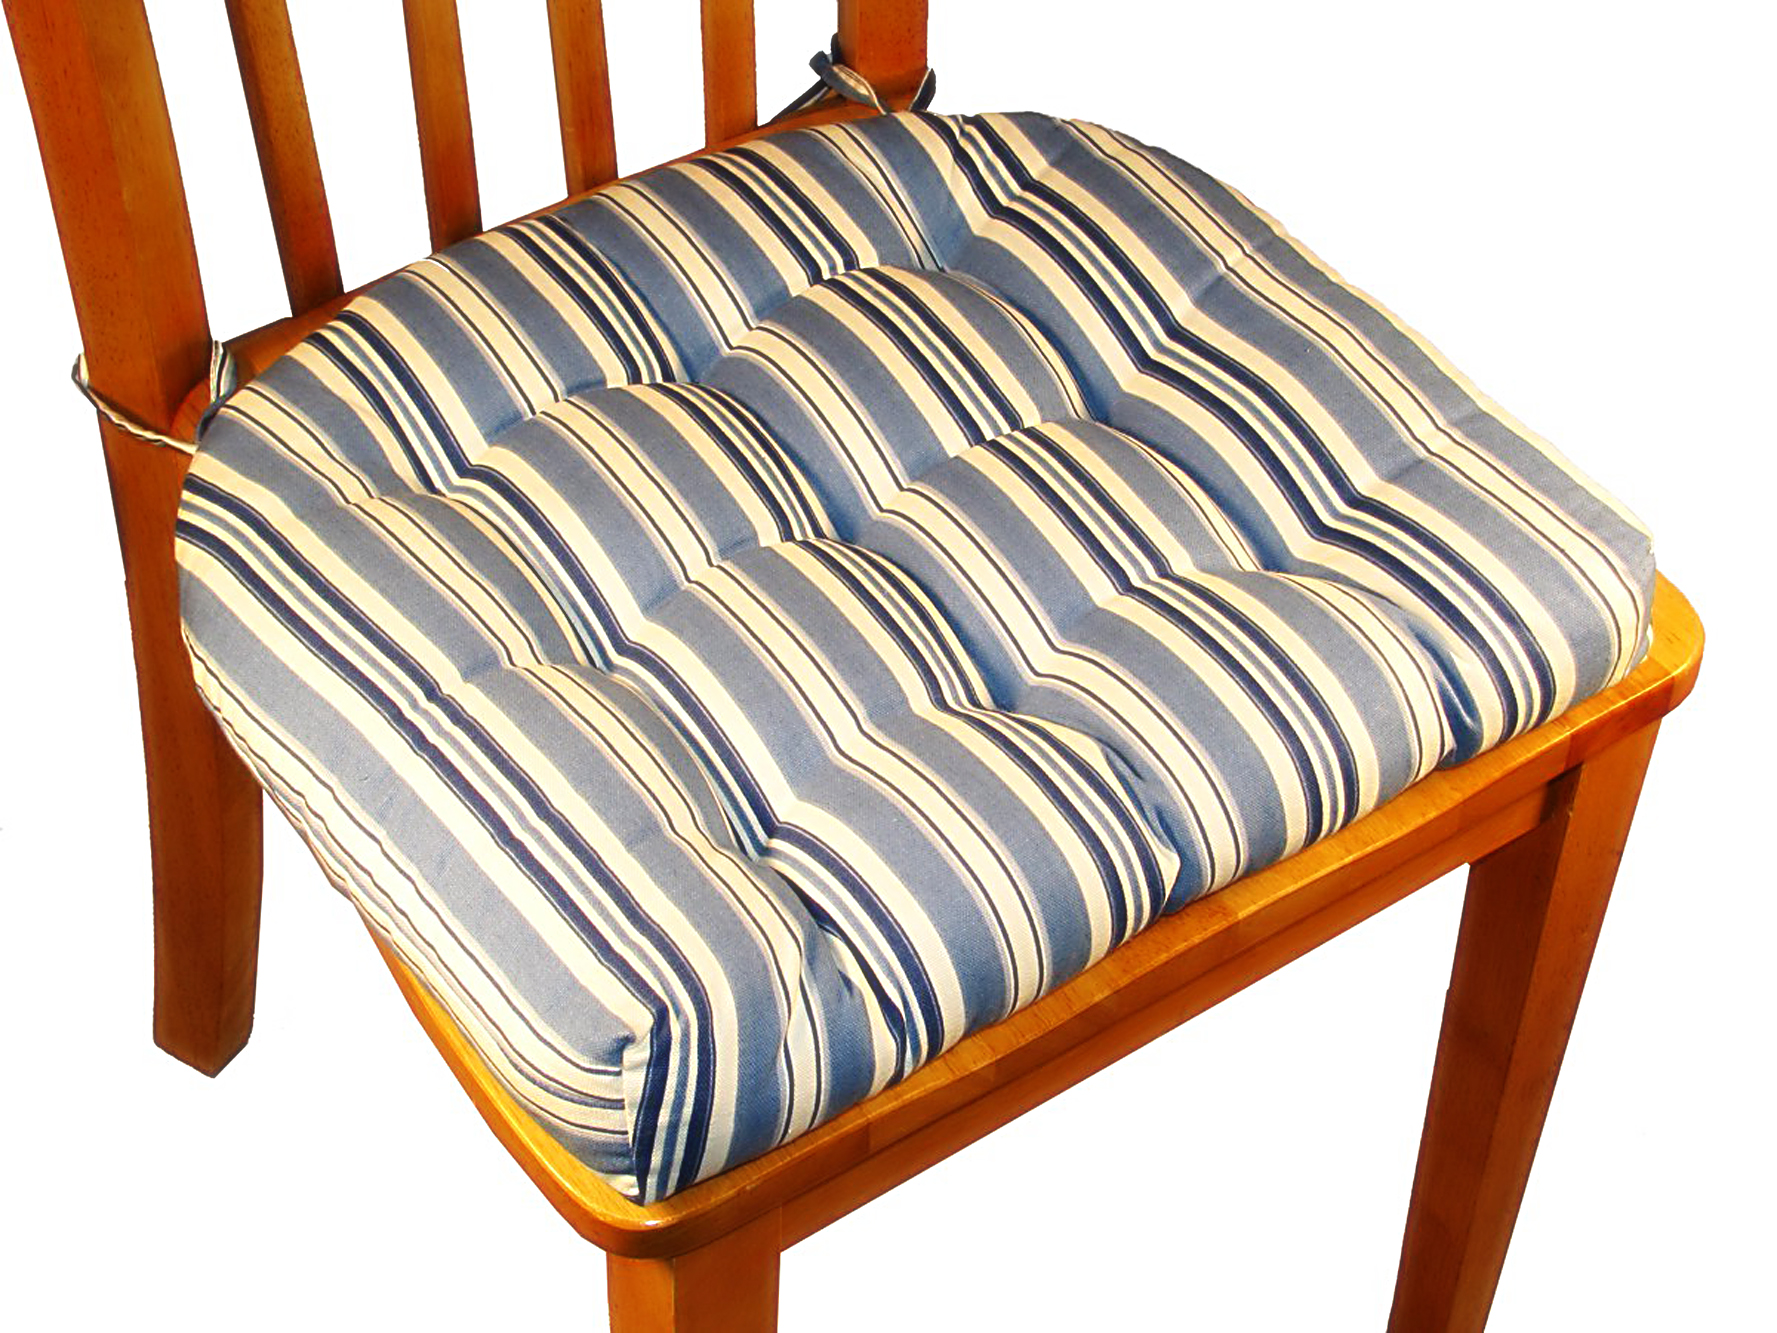 kitchen chair cushions with ties uk cushions for kitchen chairs Chair Cushions With Ties Uk Chairs Home Decorating Ideas Hash